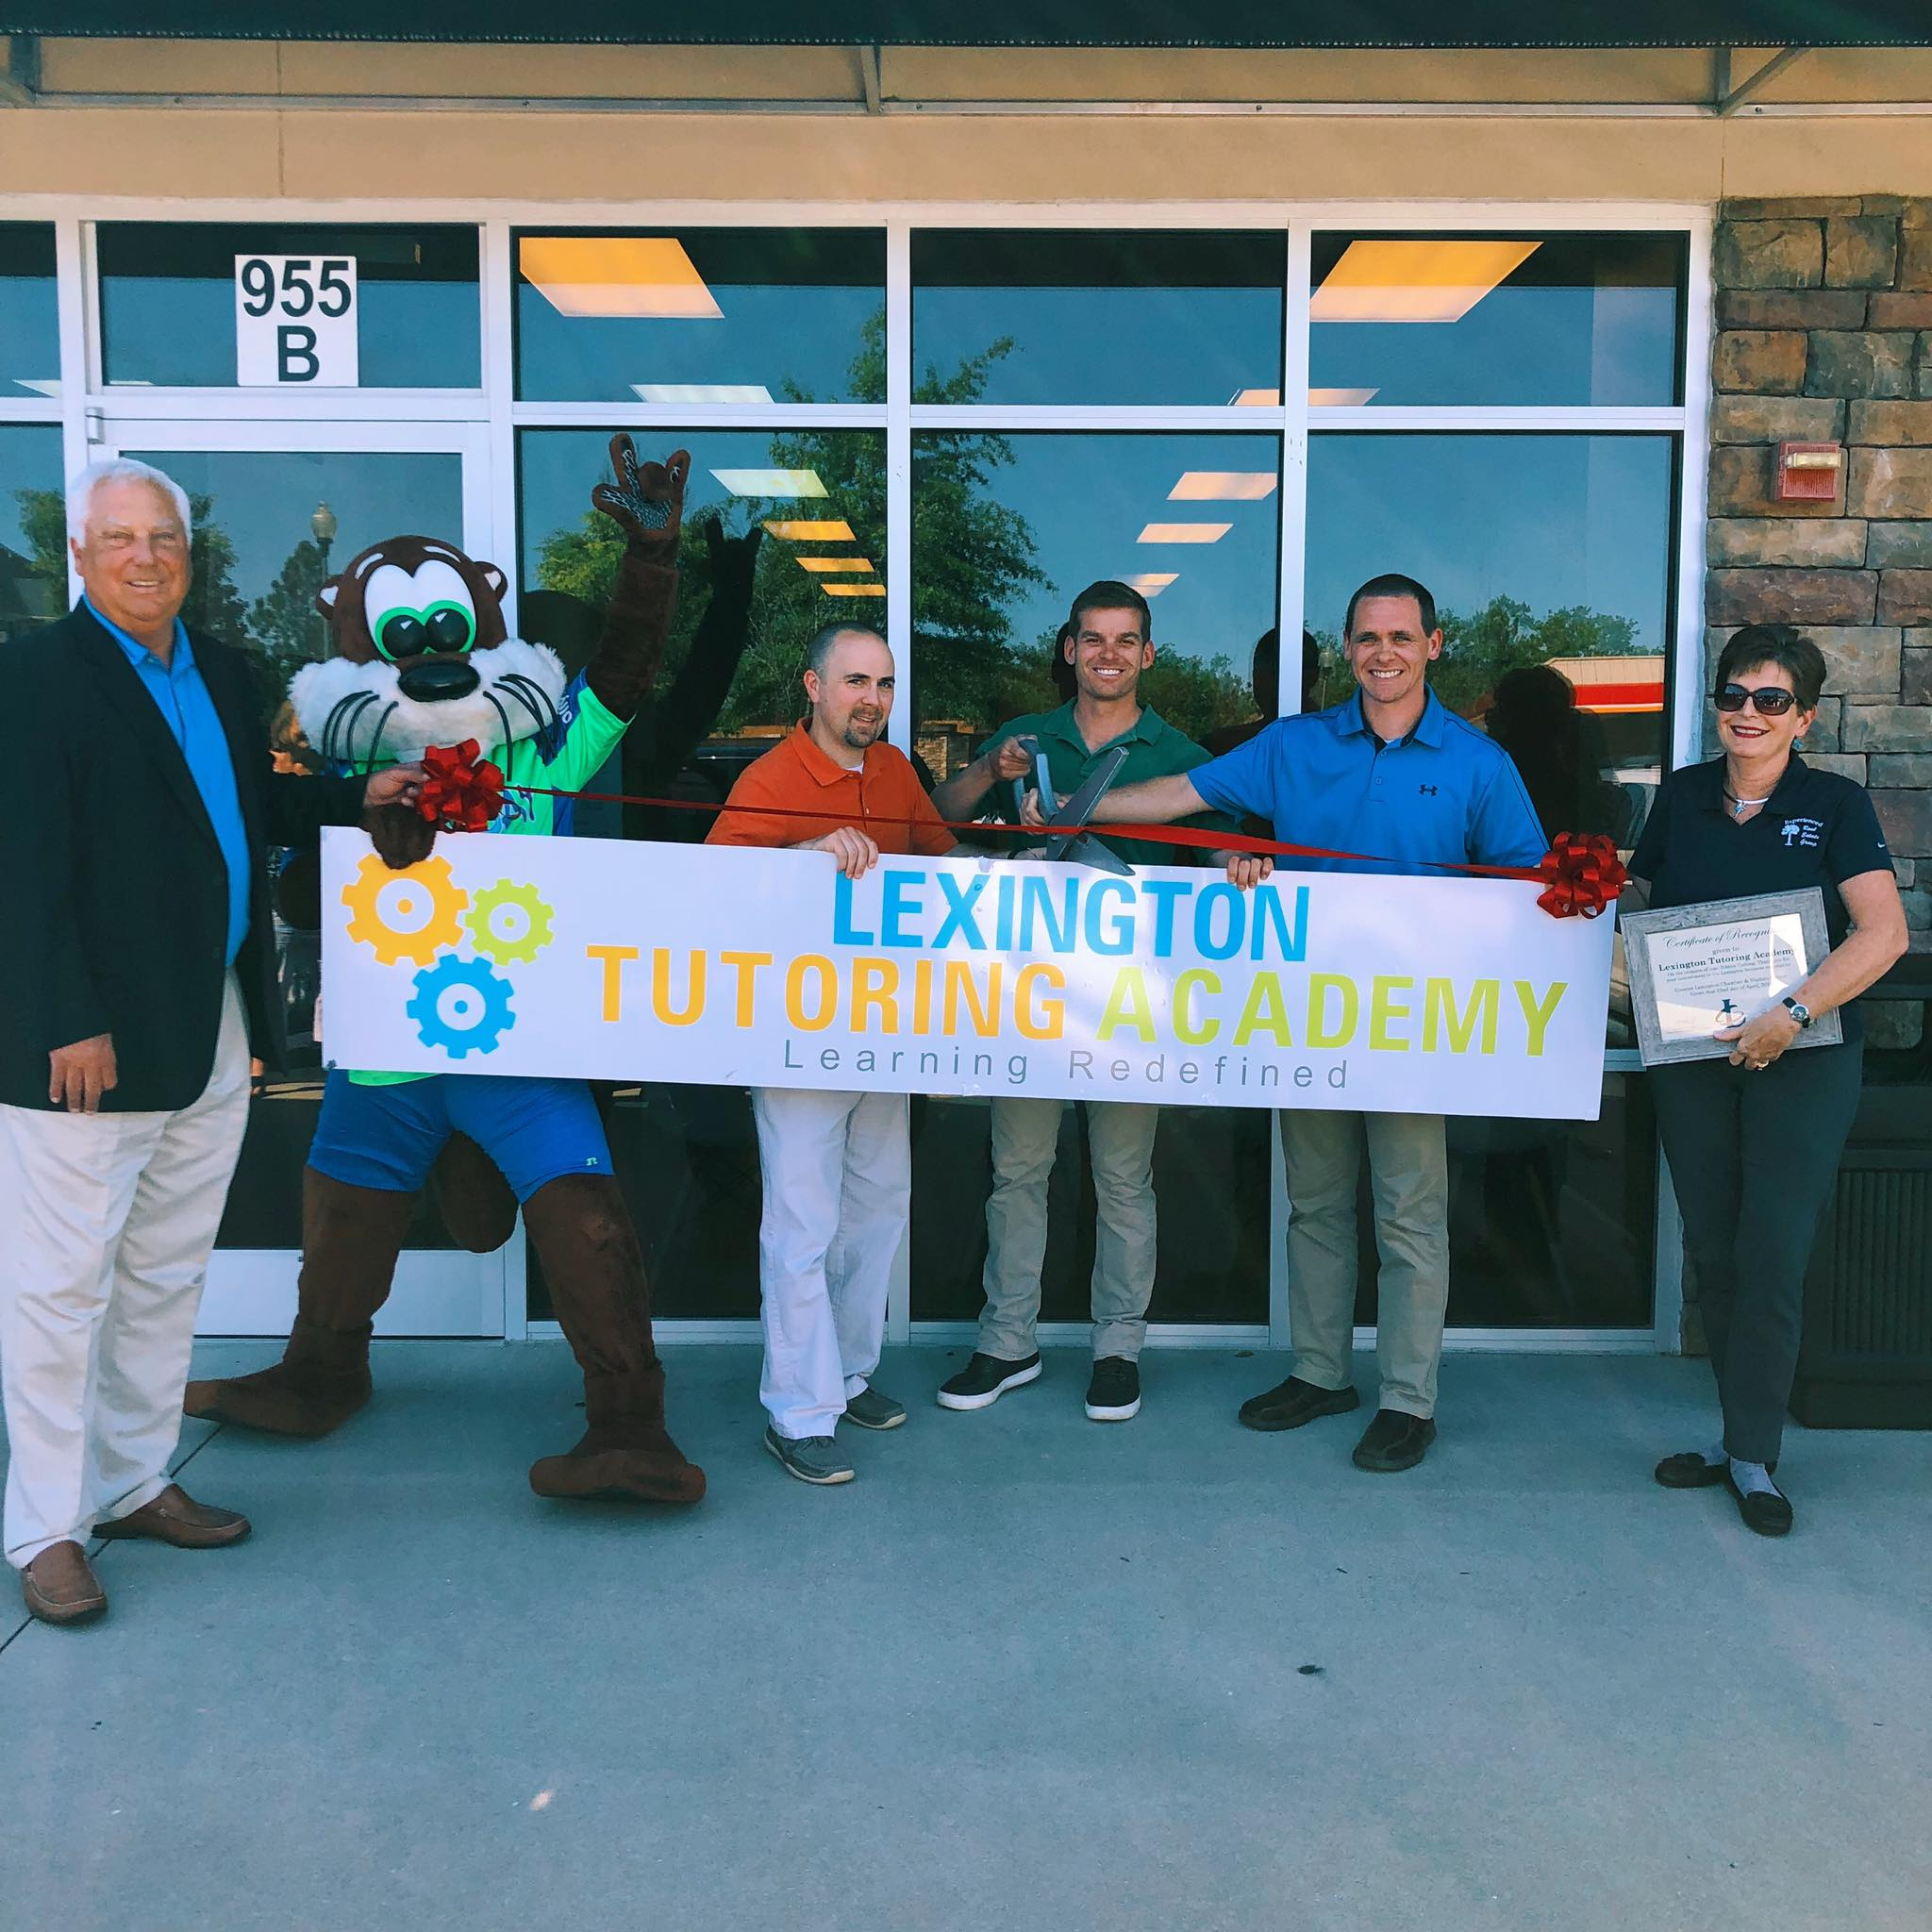 This new tutoring academy in Lexington is anything by ordinary